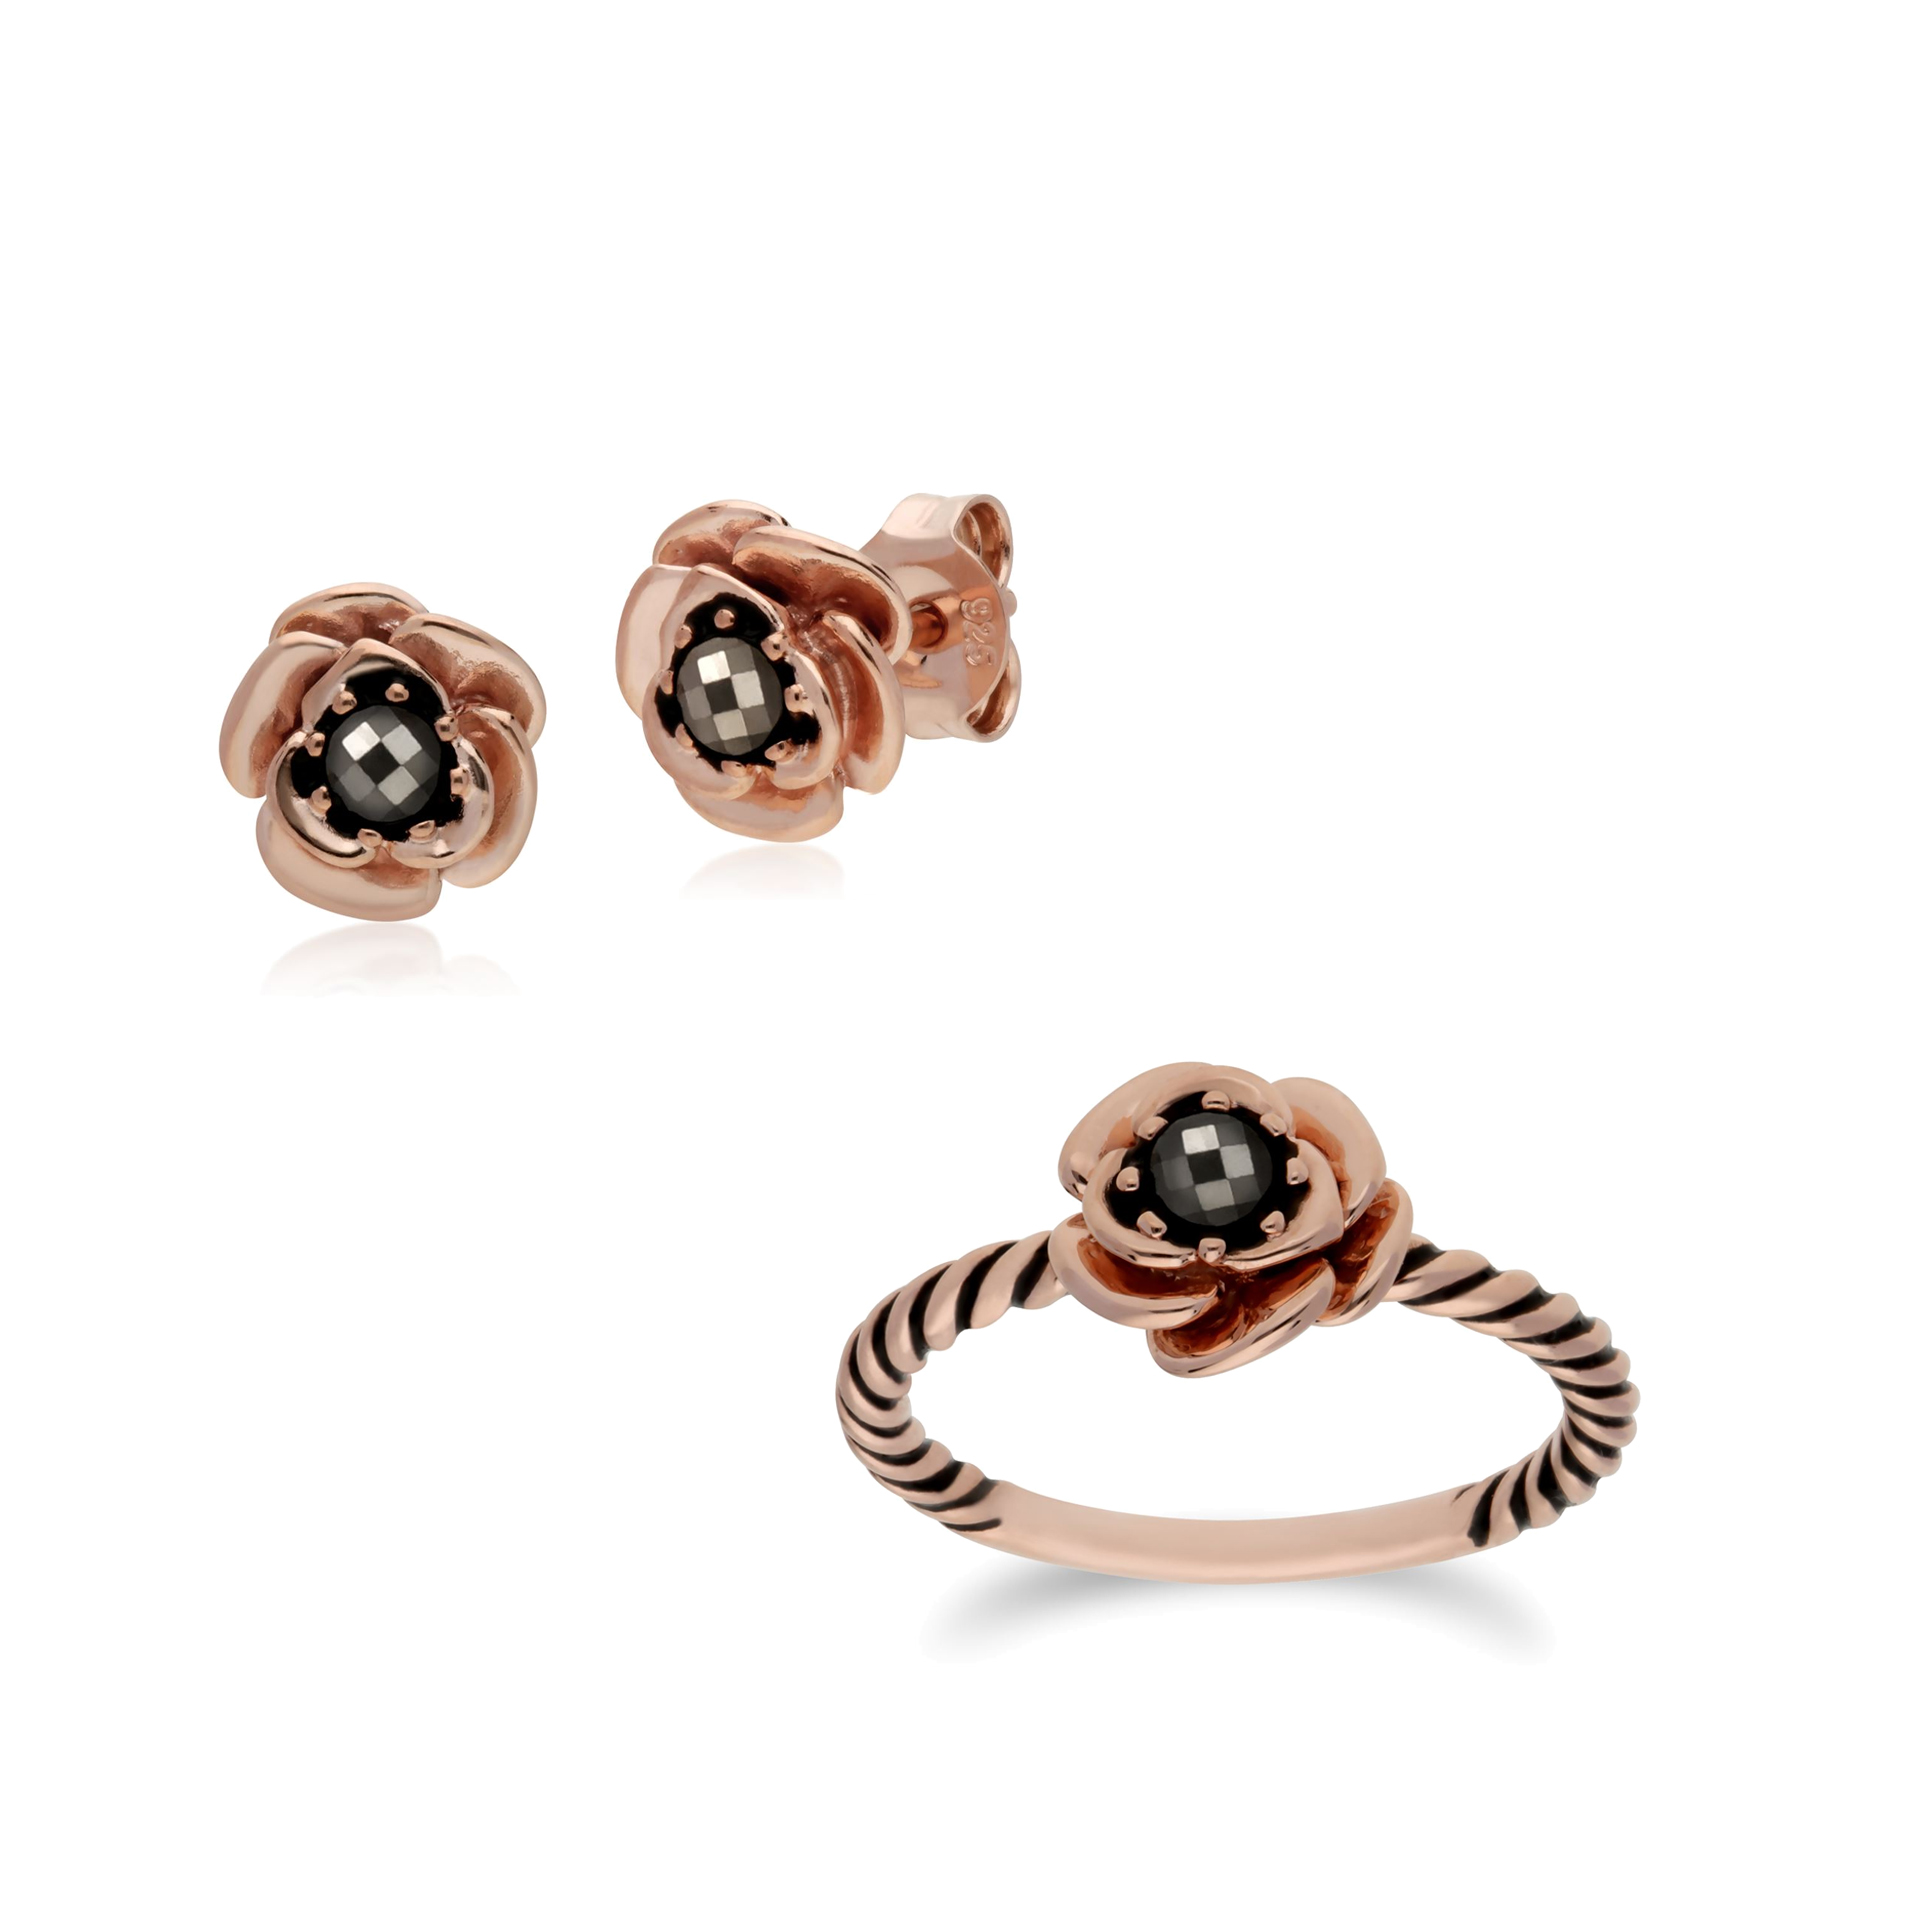 bcdd1beca Details about Rose Gold Plated Sterling Silver Floral Marcasite Stud Earring  & Ring Set